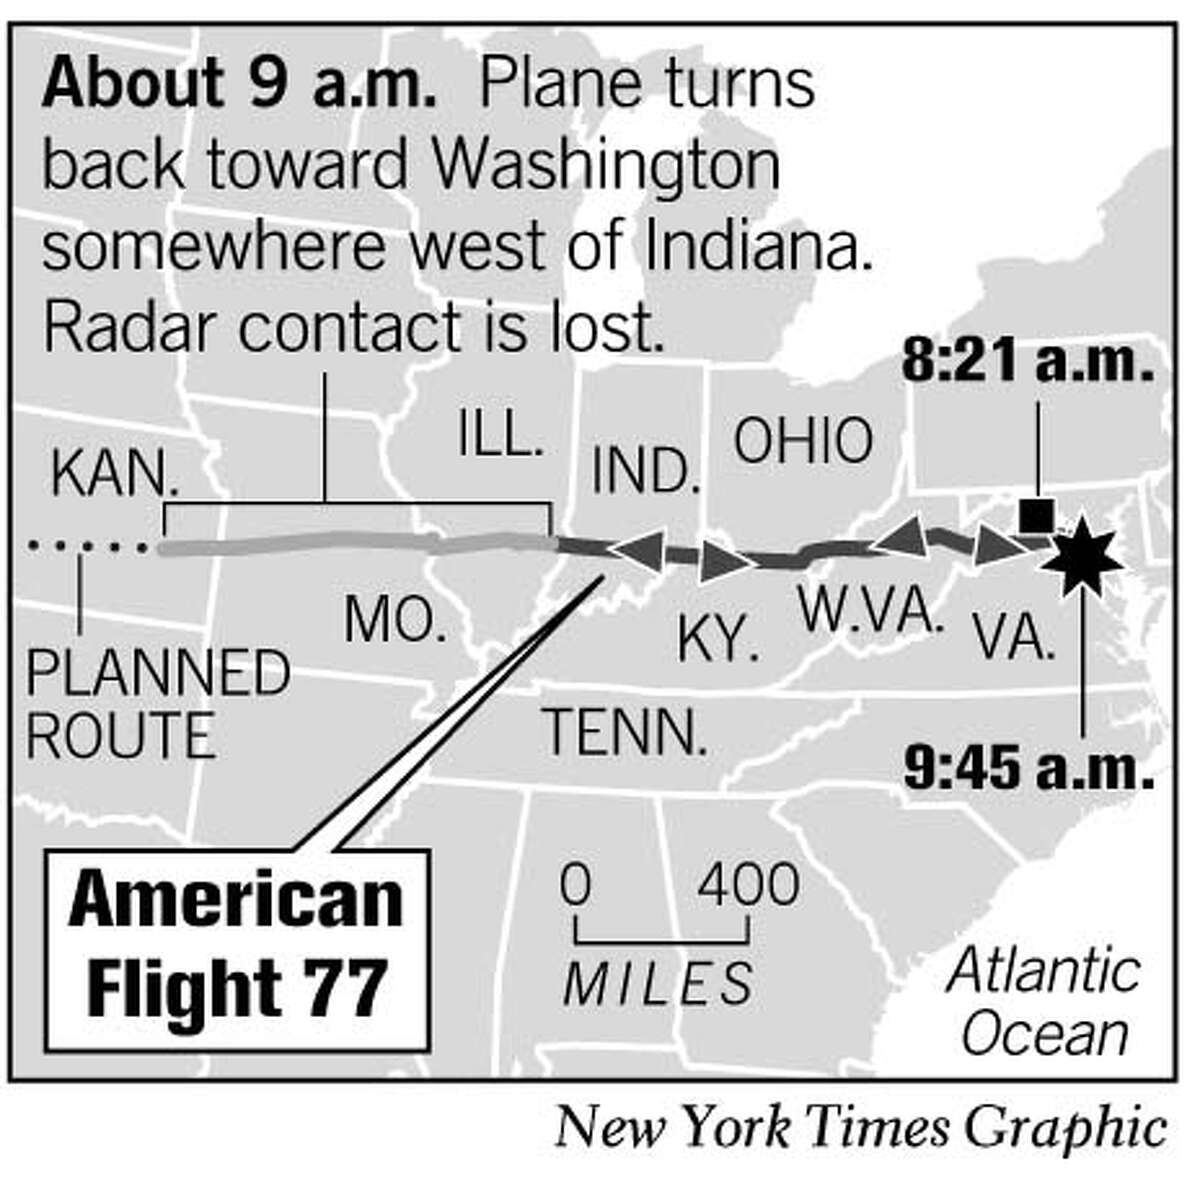 American Flight 77. New York Times Graphic